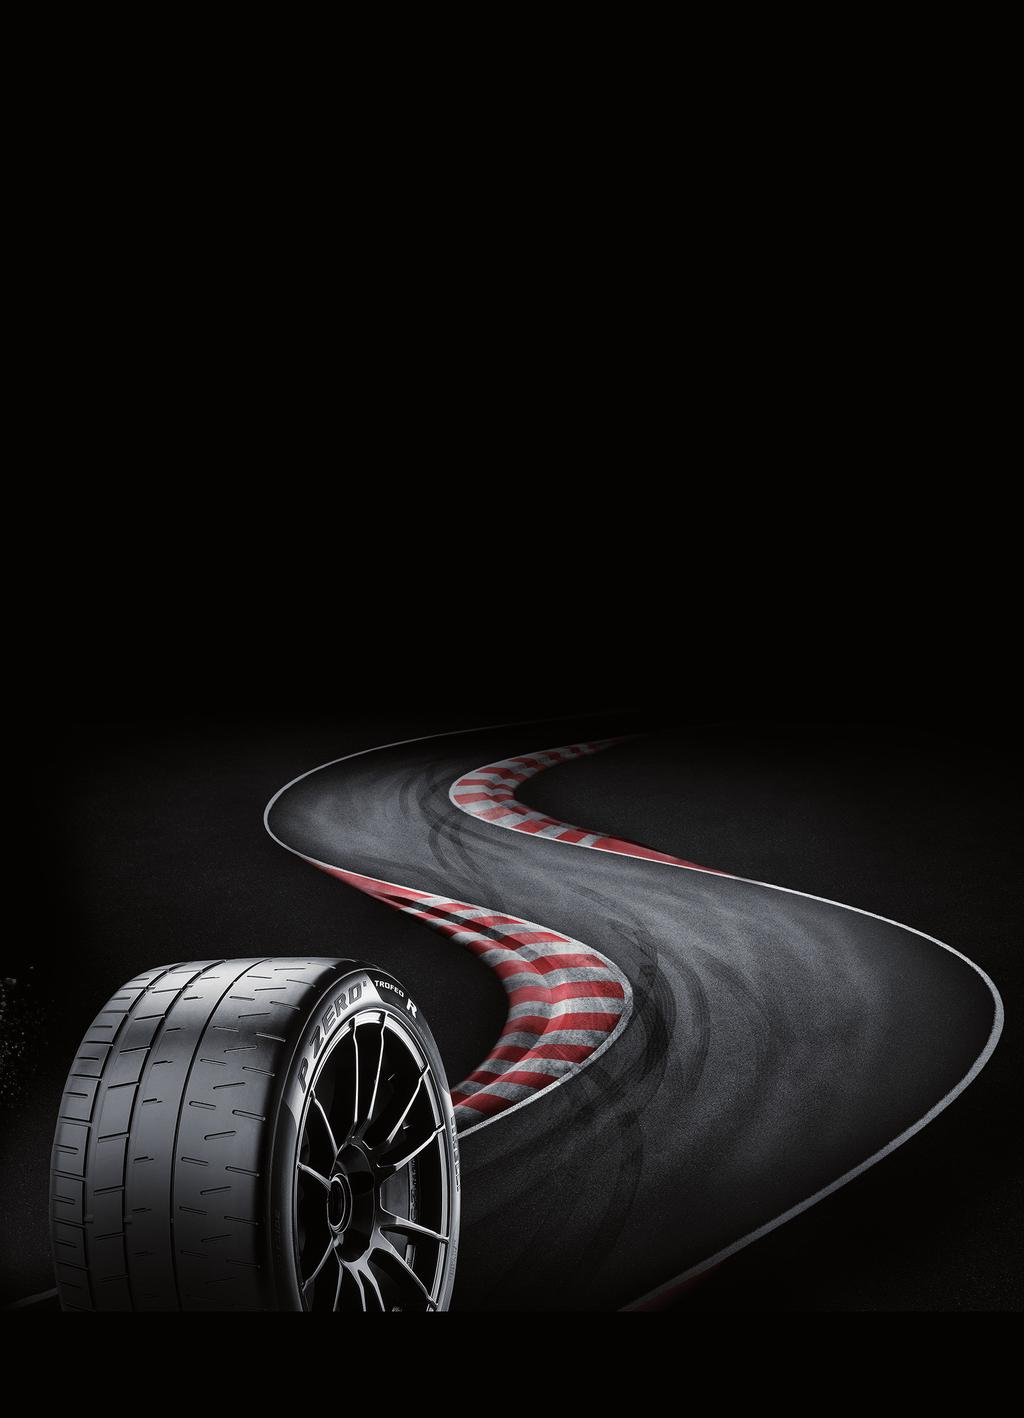 LIST RACING TYRES MARCH 1 st,